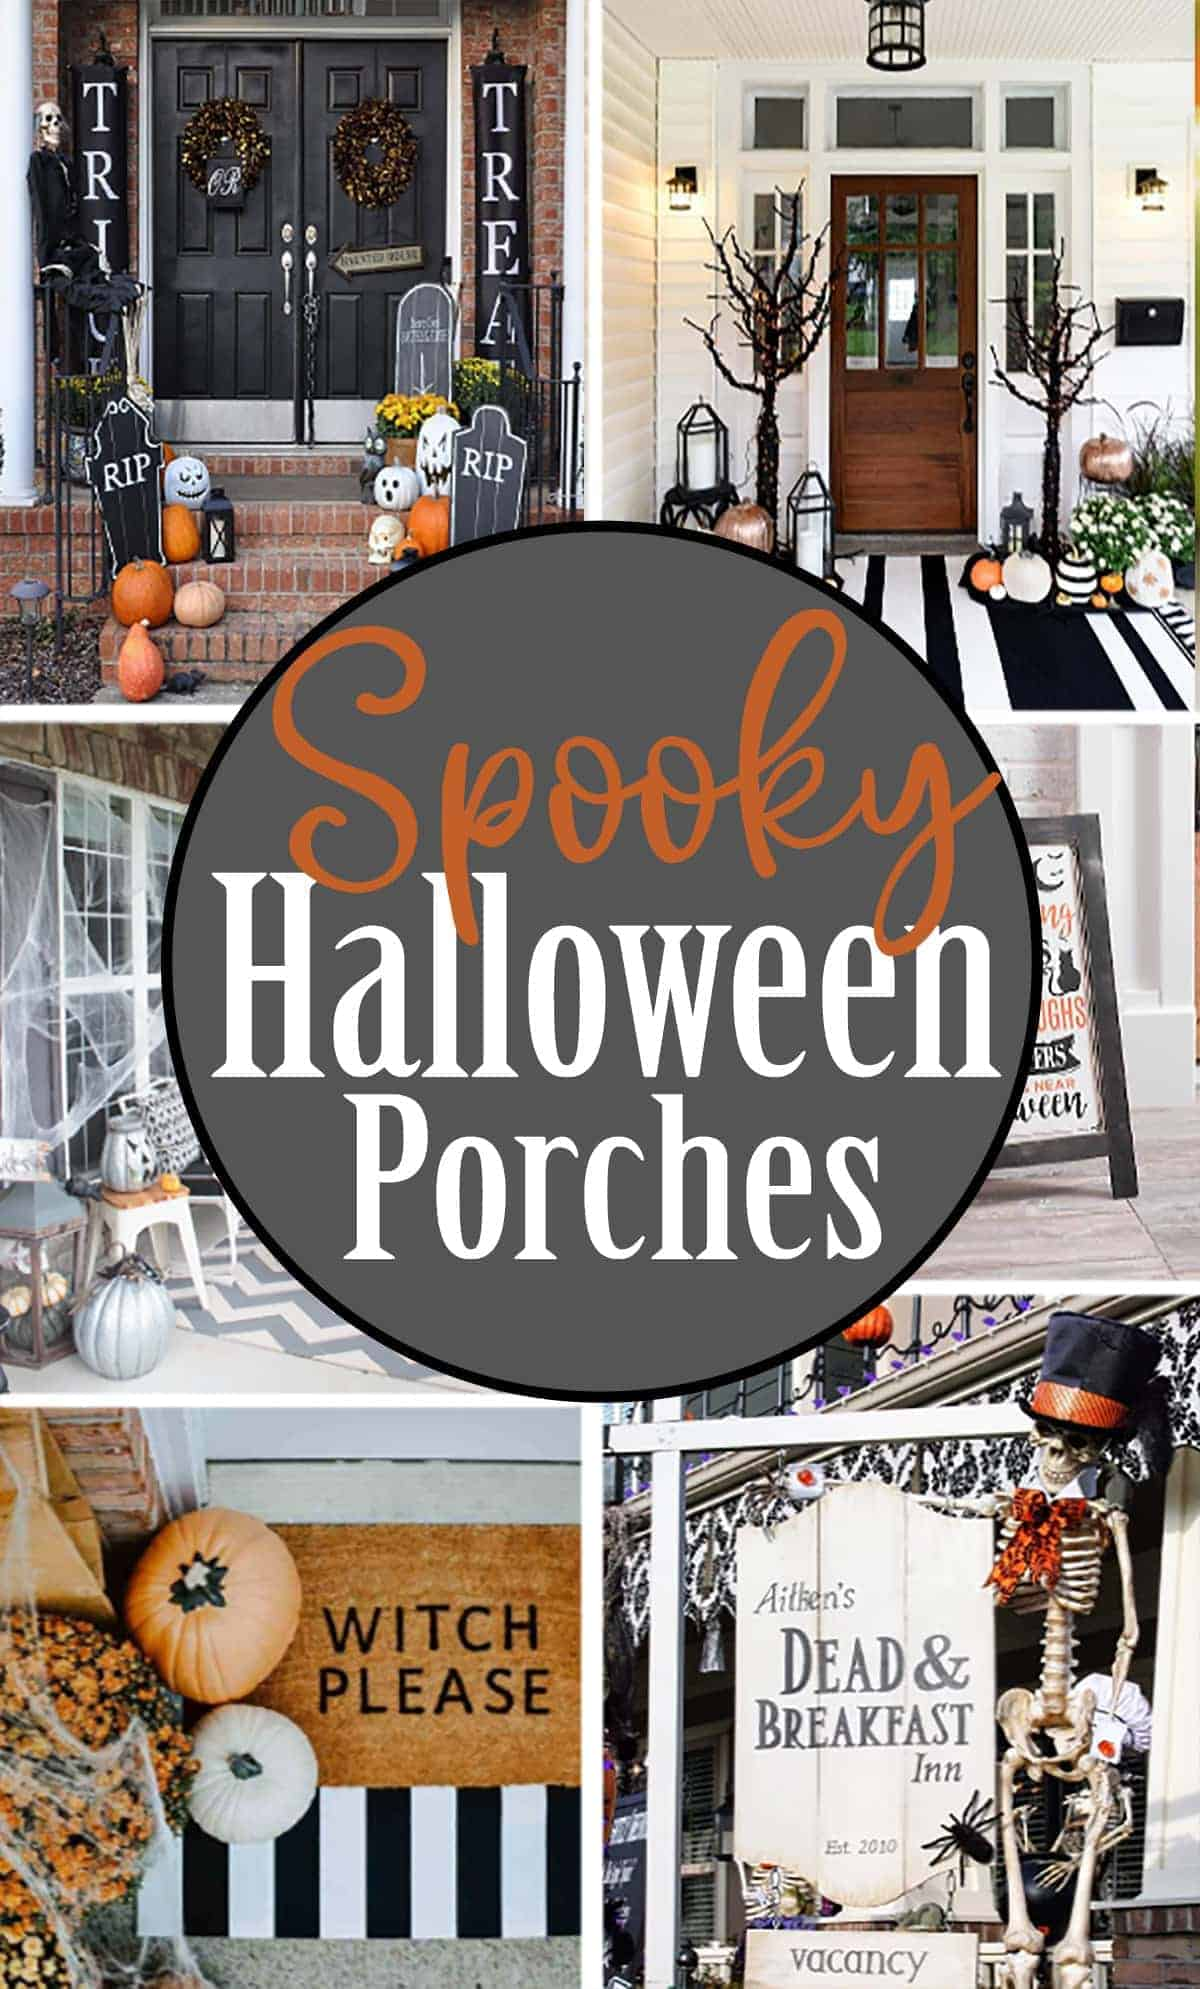 Spooky Halloween Porch Decor Ideas including custom made door mats, Dead & Breakfast Inn sign, and black and white themed front porch with title.